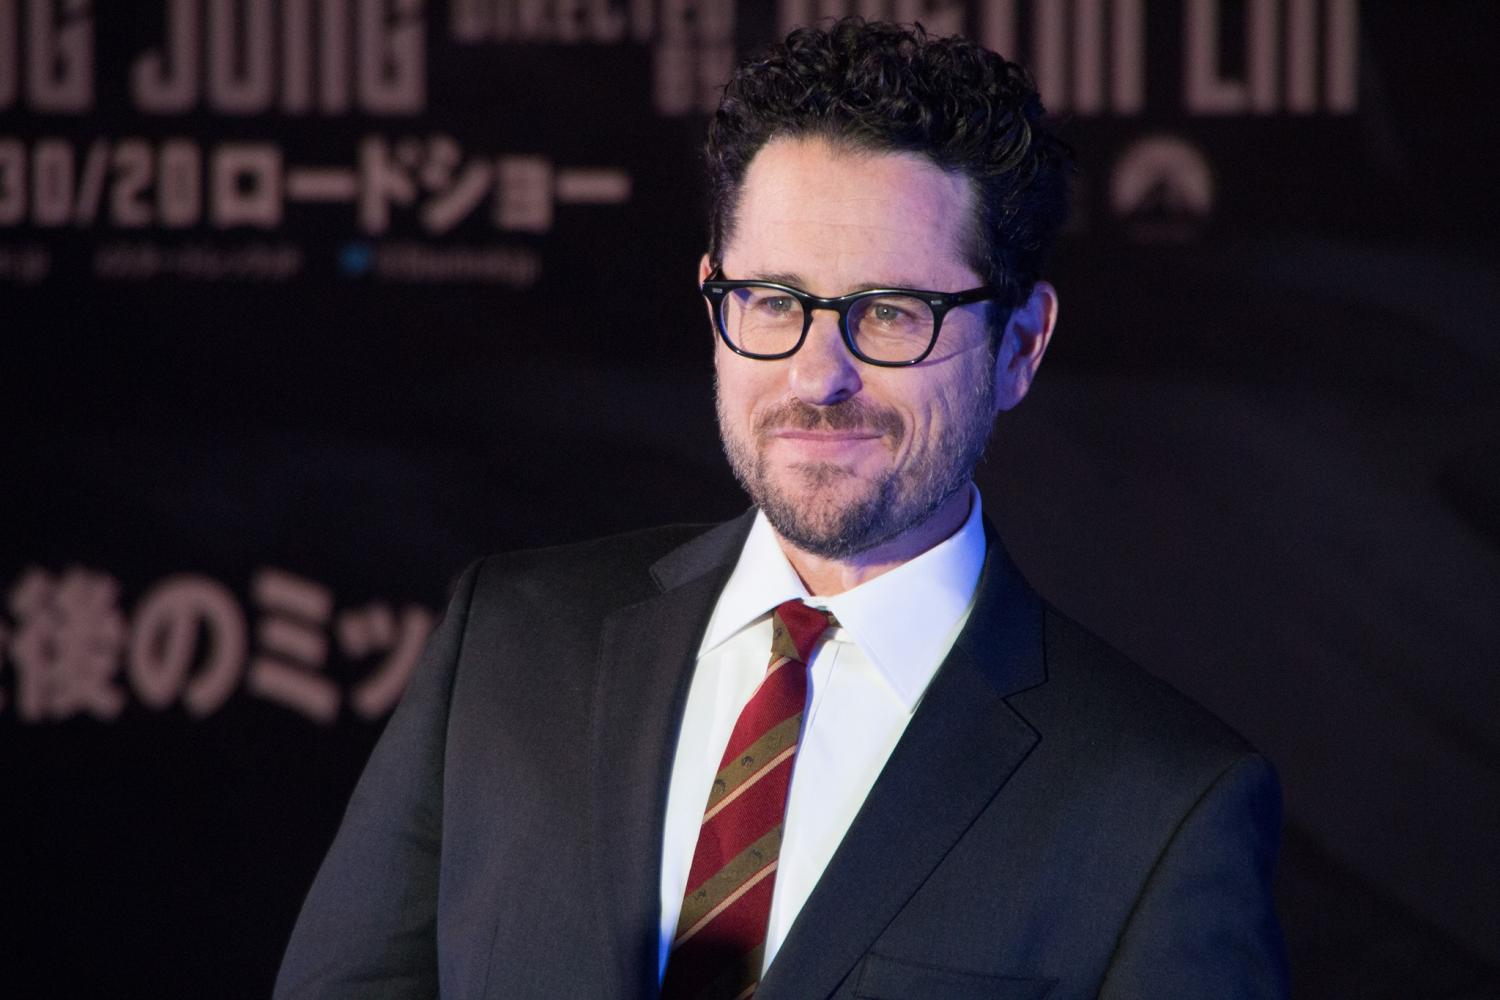 Paramount is Not Happy About JJ Abrams' Return to Star Wars